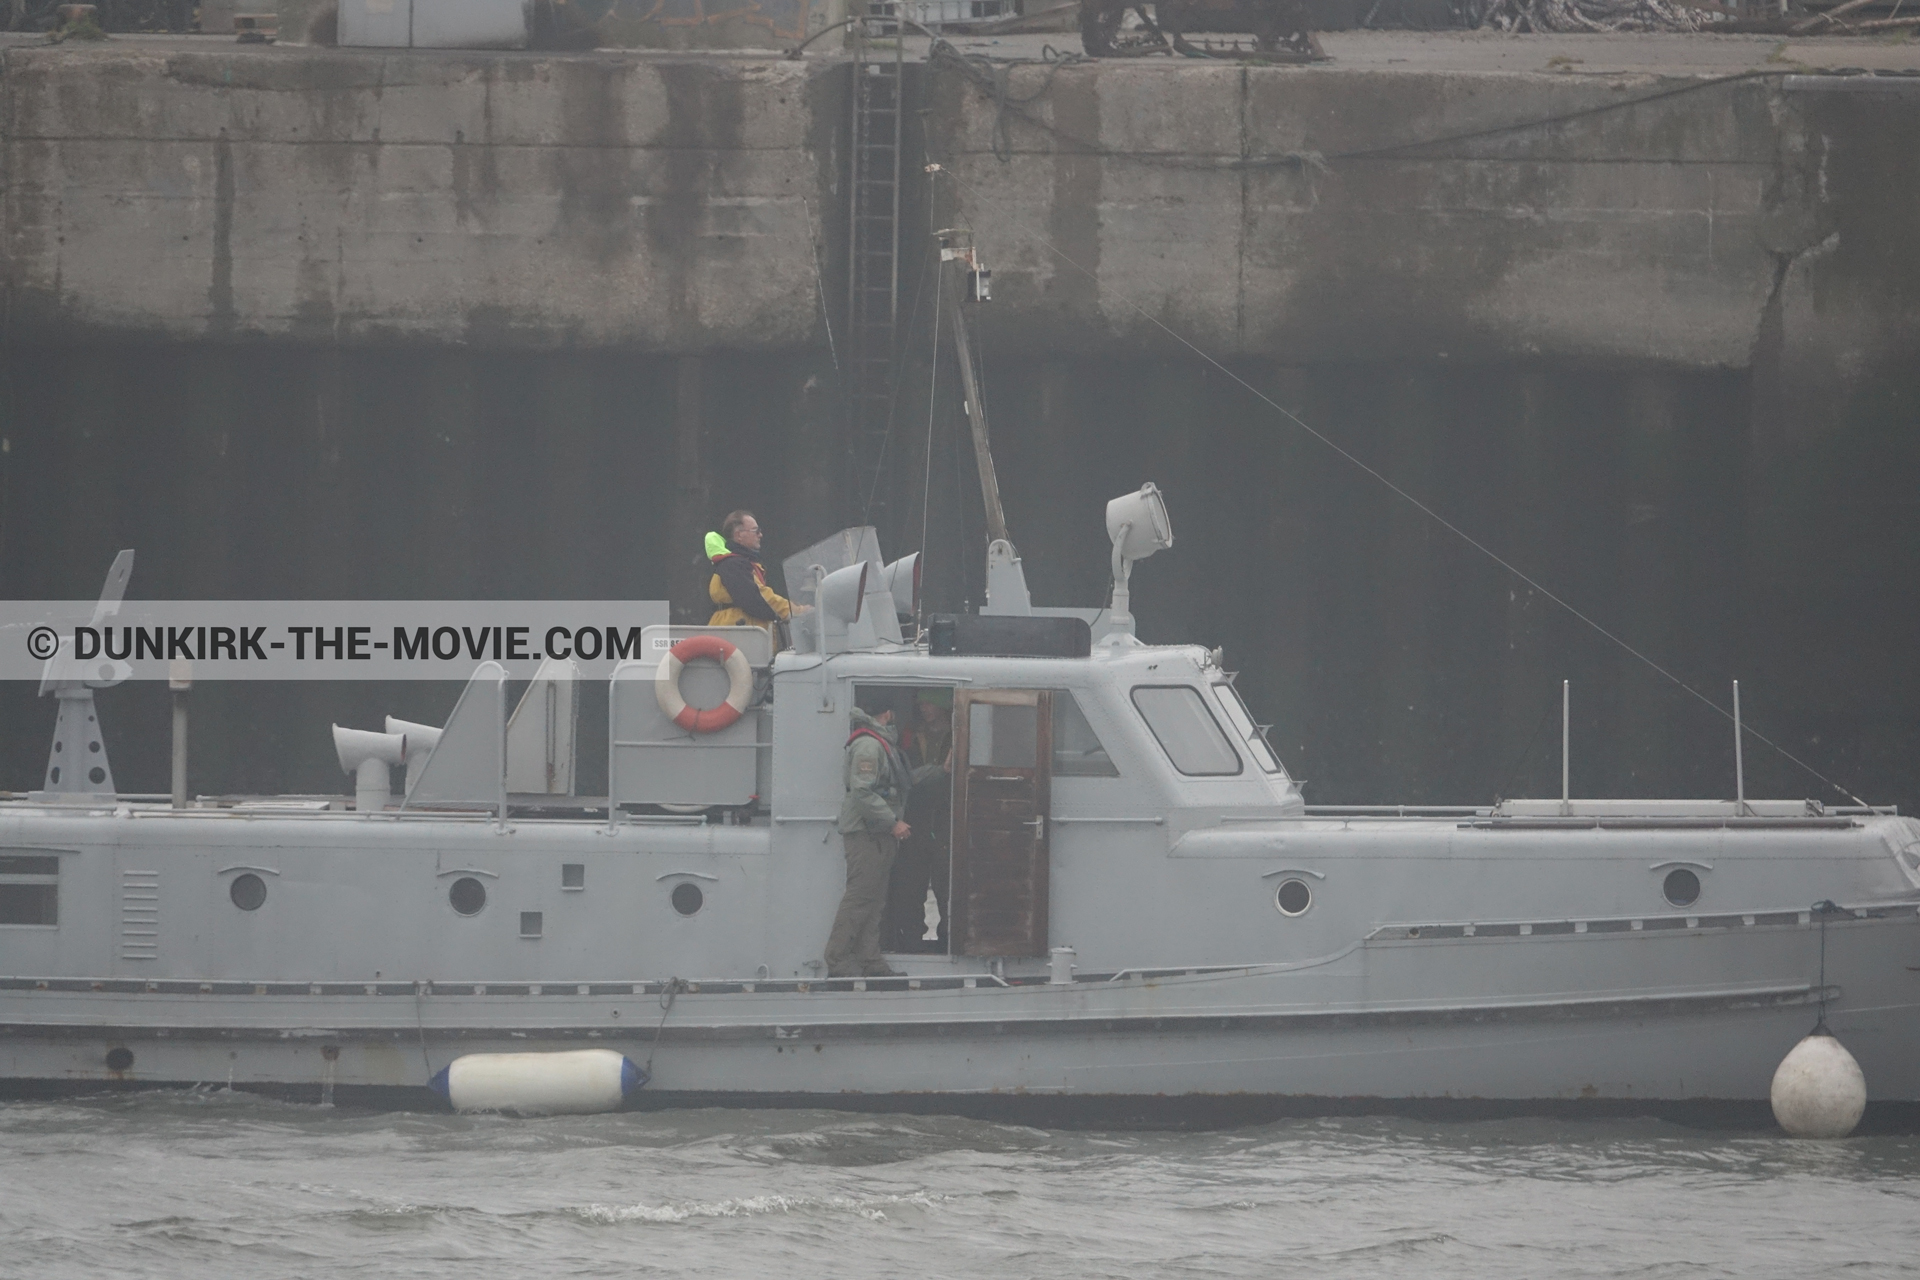 Picture with boat, PR 22,  from behind the scene of the Dunkirk movie by Nolan